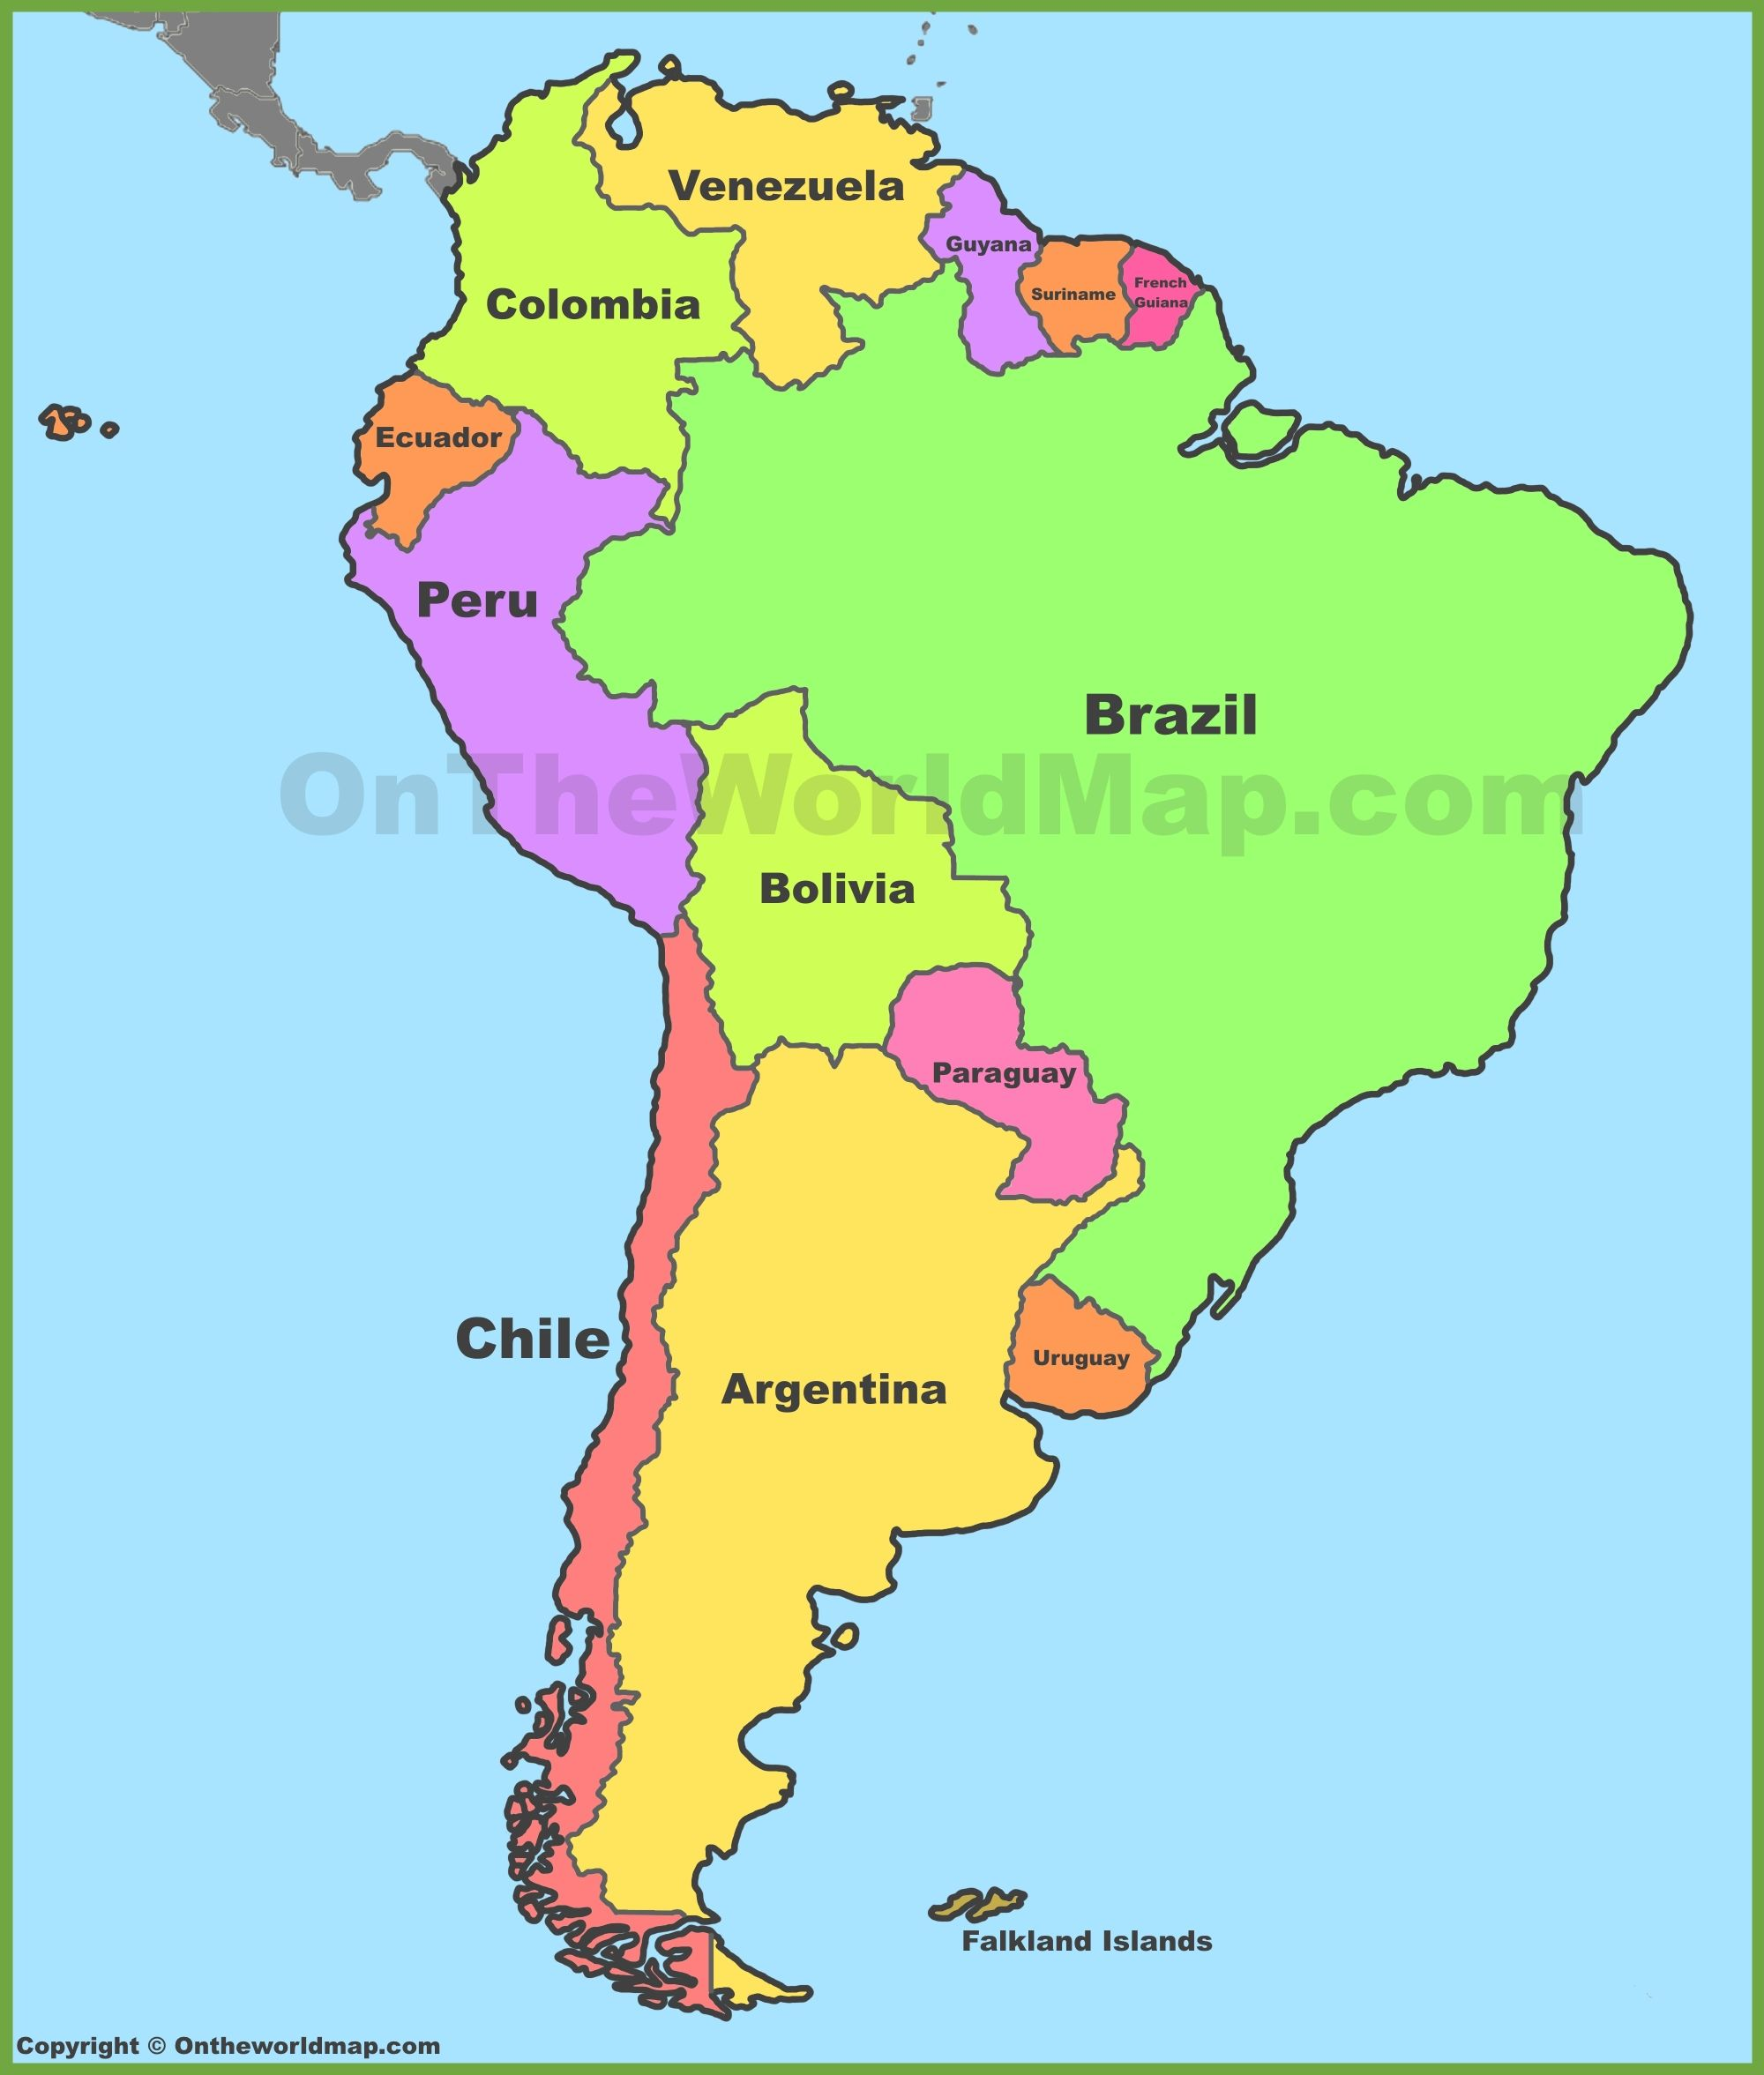 Political map of South America | cool map | Pinterest | South ...